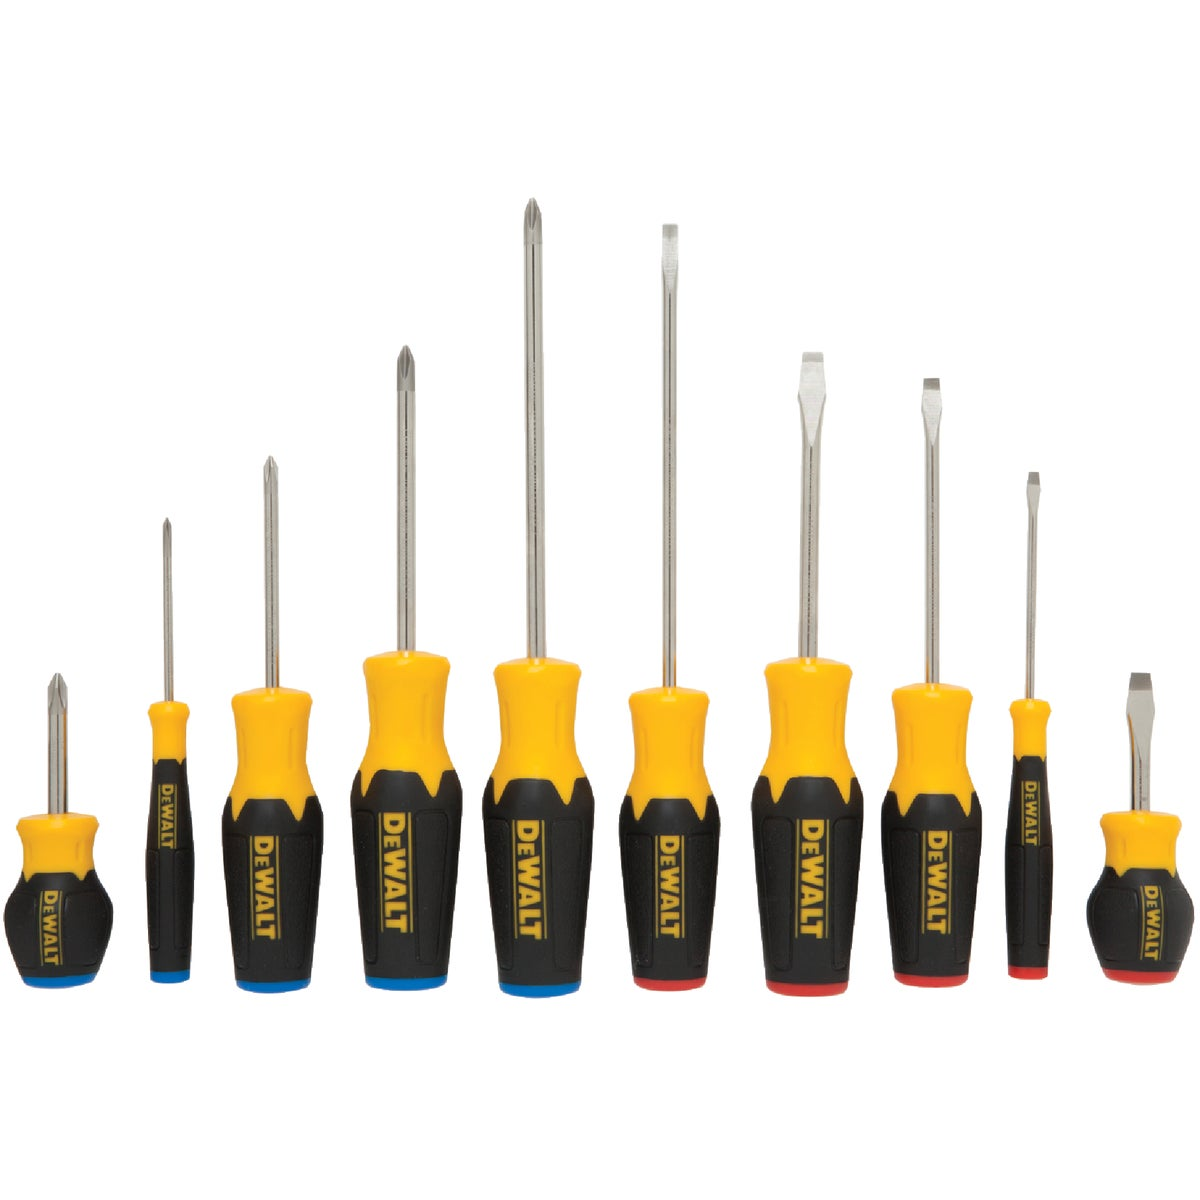 10PC SCREWDRIVER SET - DWHT62513 by Stanley Tools